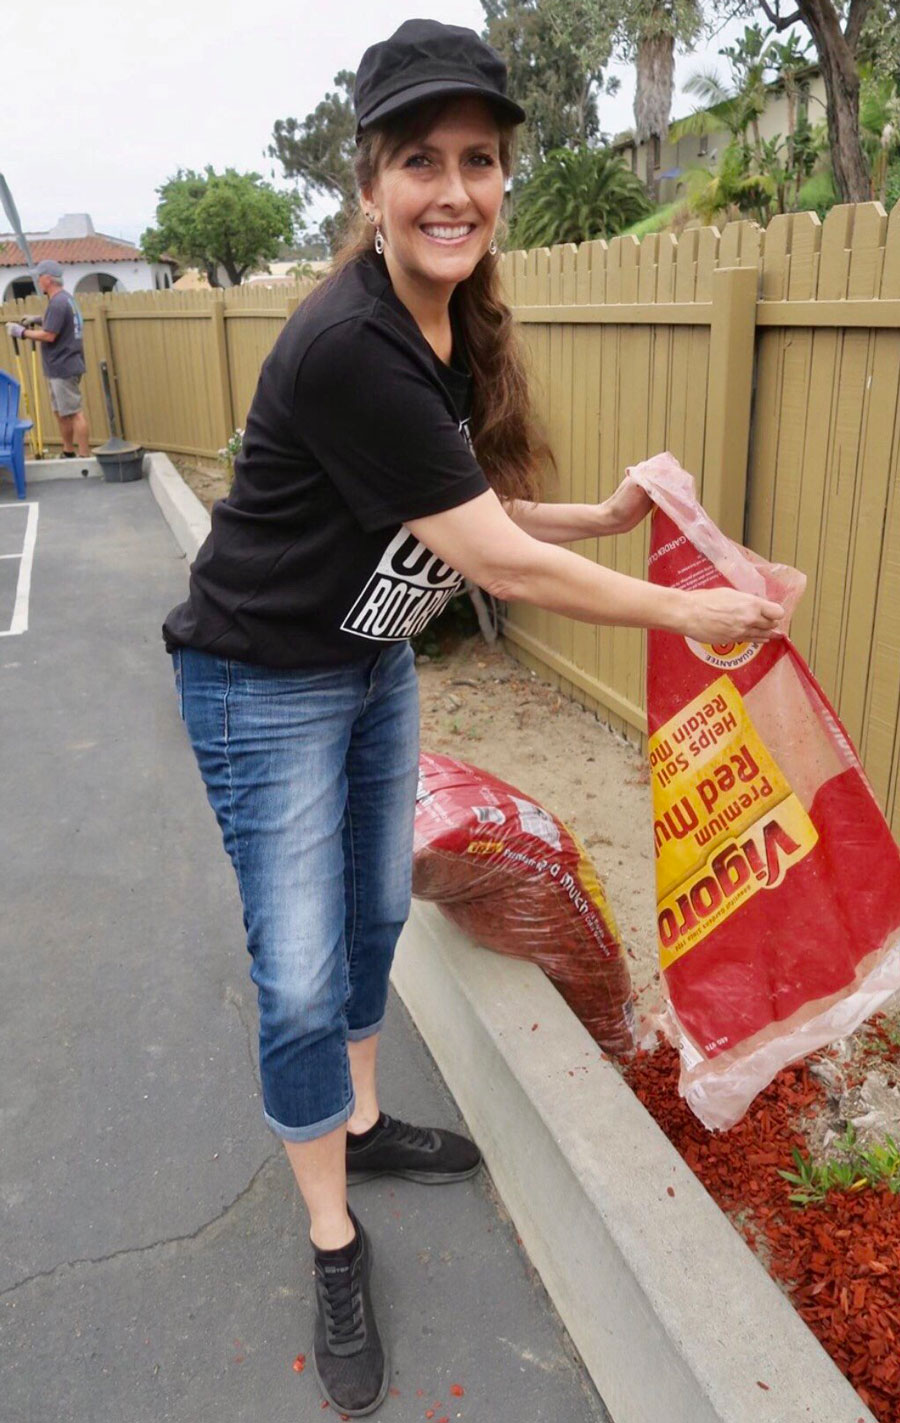 Malena's non profit organization, Giving with Impact, is helping San Diego's most vulnerable